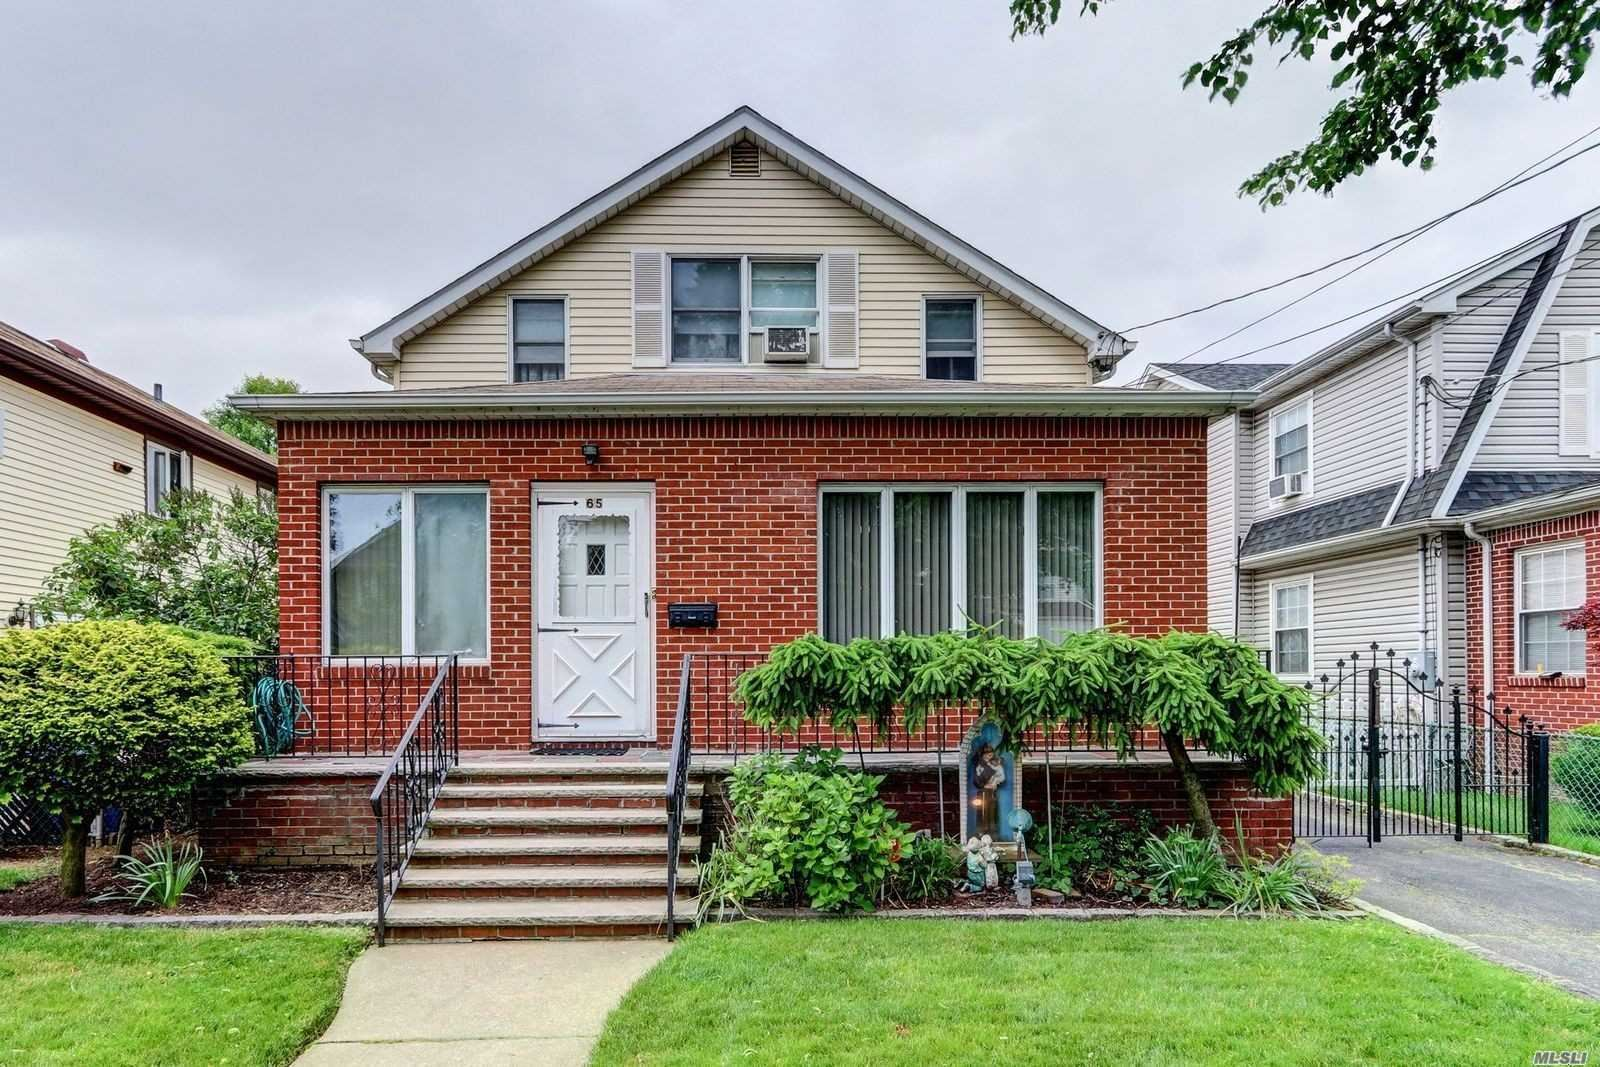 65 Willis Ave, Floral Park, NY 11001 - MLS#: 3221952